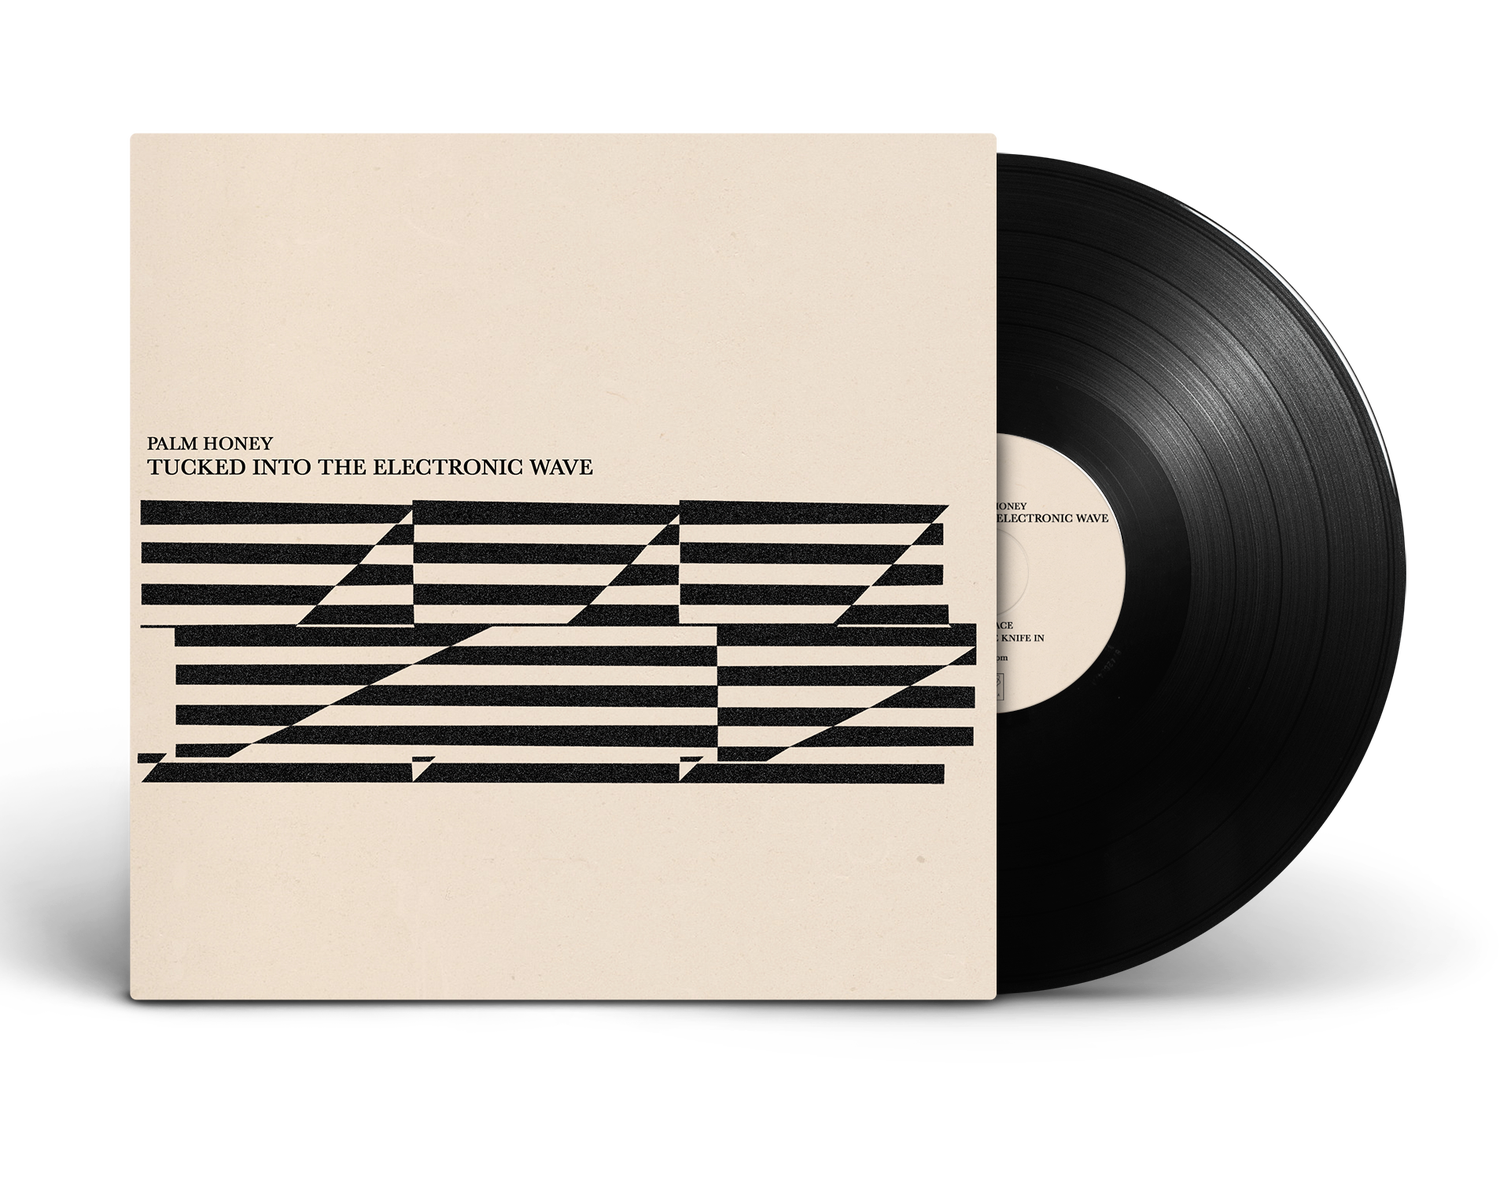 """Image of Palm Honey - """"Tucked Into The Electronic Wave"""" 12 INCH Signed EP"""